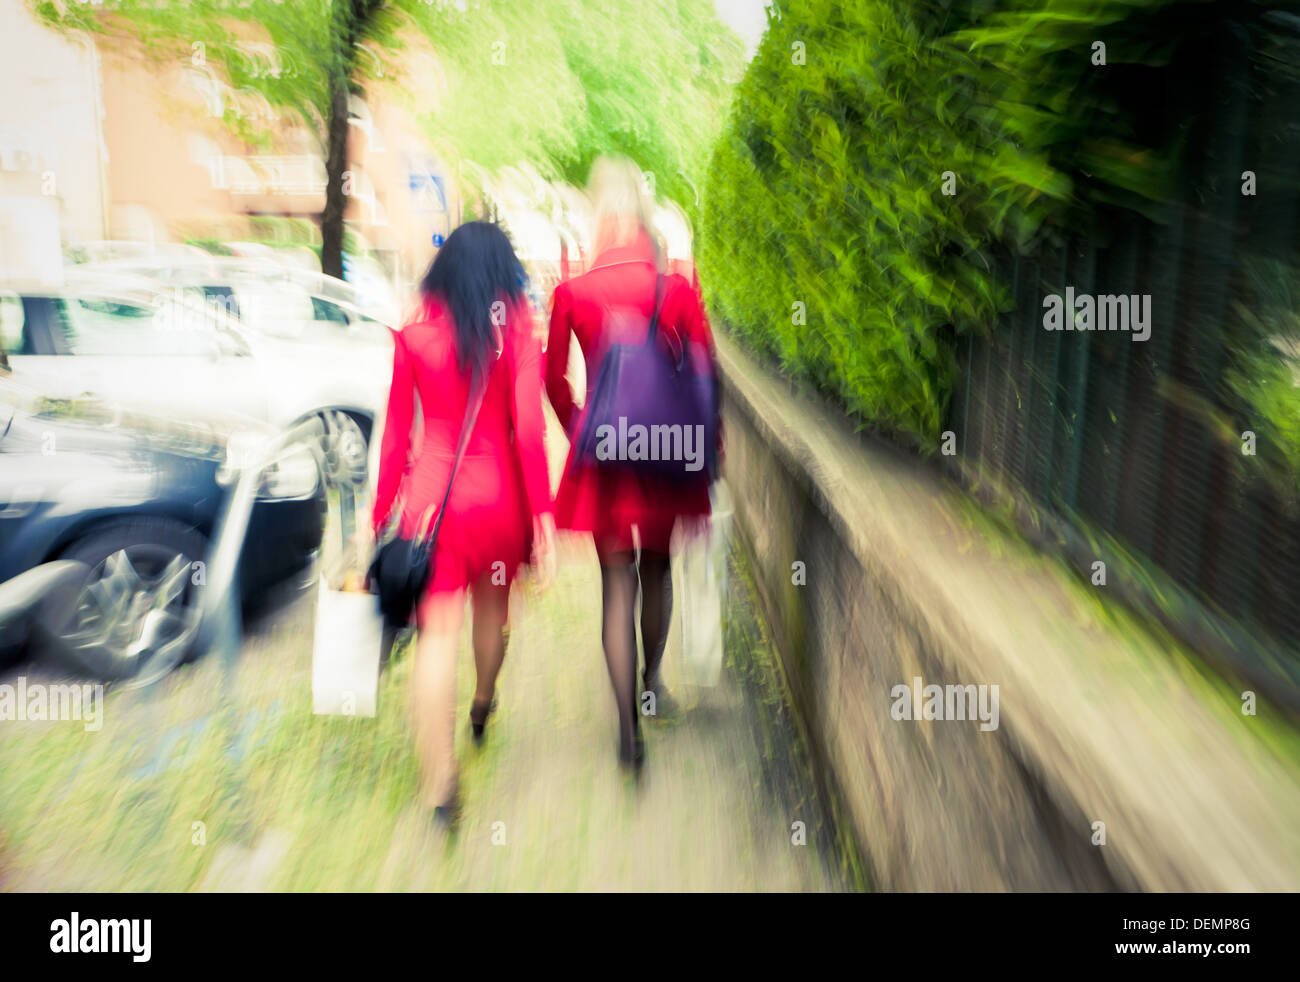 Two unrecognizable fashionable women in red going ahead, intentional motion blur - Stock Image